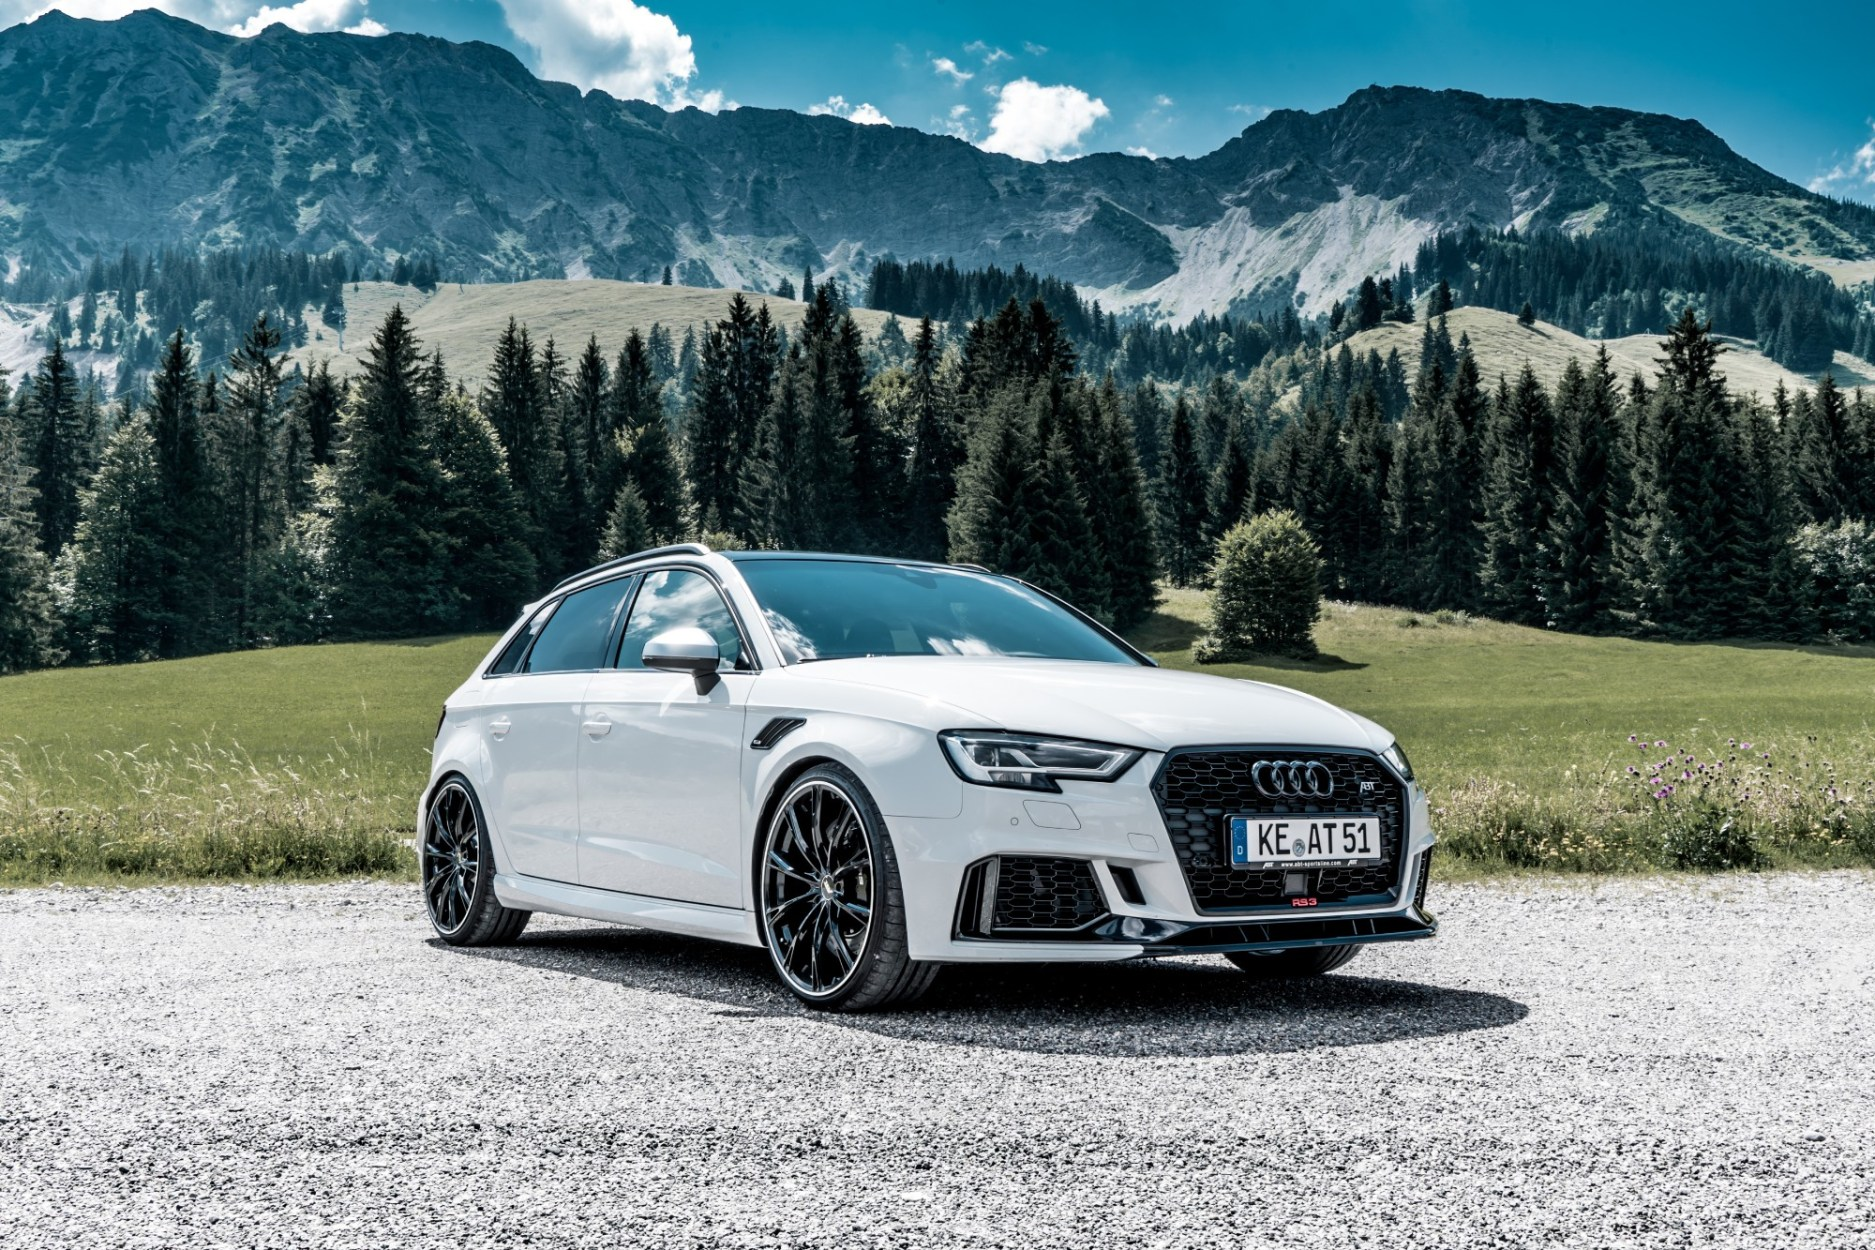 """Edelweiss"" With 500 HP And The NEW 20-Inch GR Rims: The ABT Audi RS 3 Sportback"